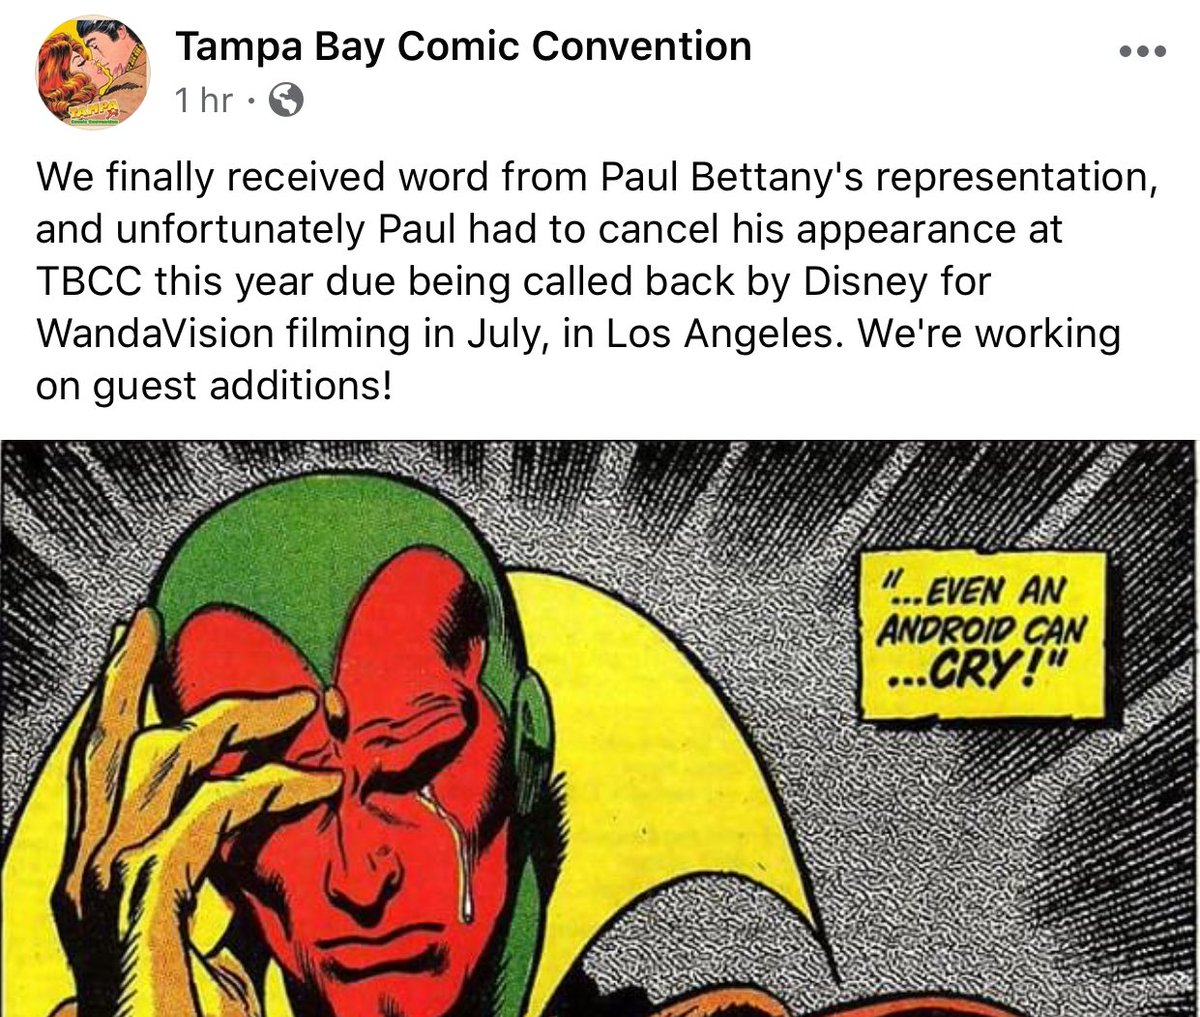 """According to @TampaComicCon's FB, #WandaVision will be filming by July! From @TampaComicCon: """"We finally received word from Paul Bettanys representation... Paul had to cancel his appearance at TBCC this year due being called back by Disney for WandaVision filming in July..."""""""